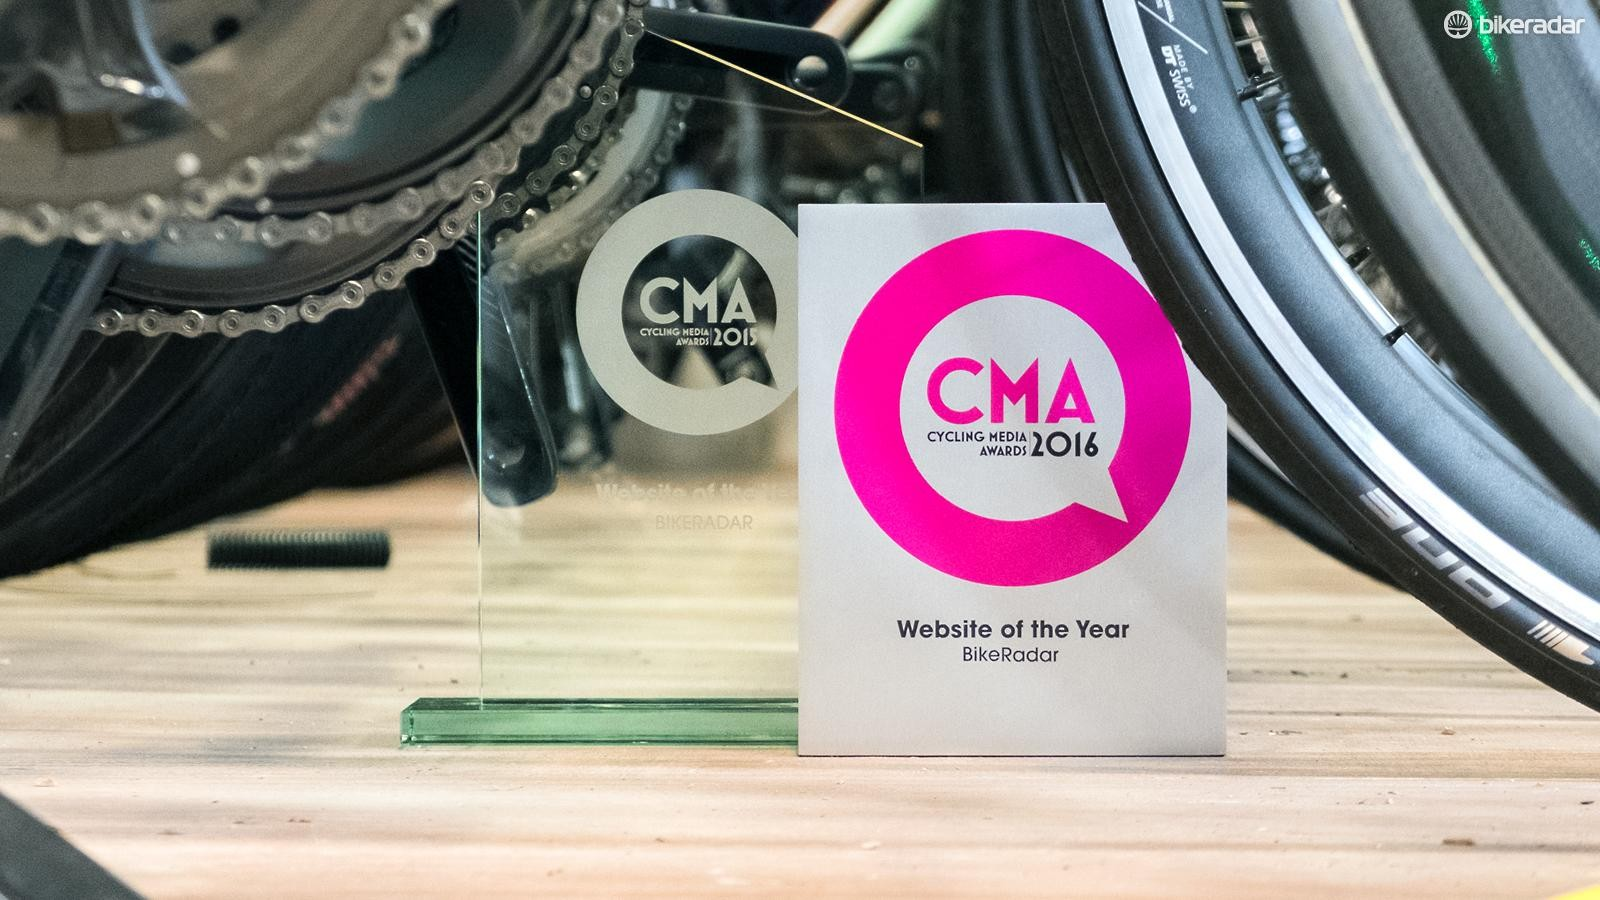 We've picked up a second CMA trophy for our collection